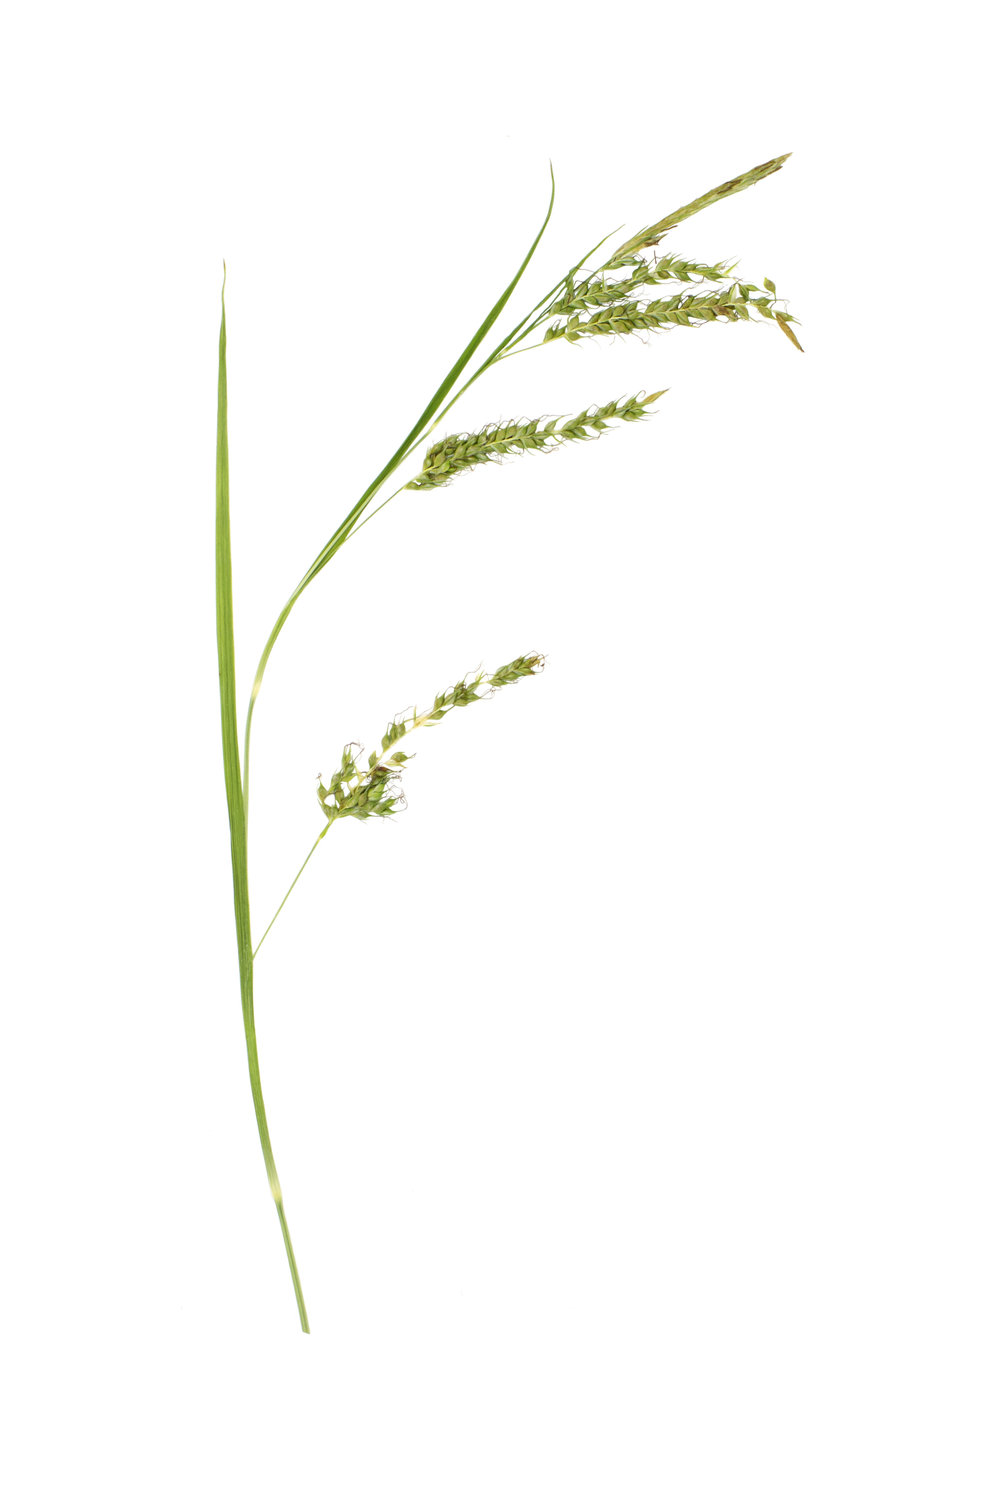 New! Bladder Sedge / Carex vesicaria